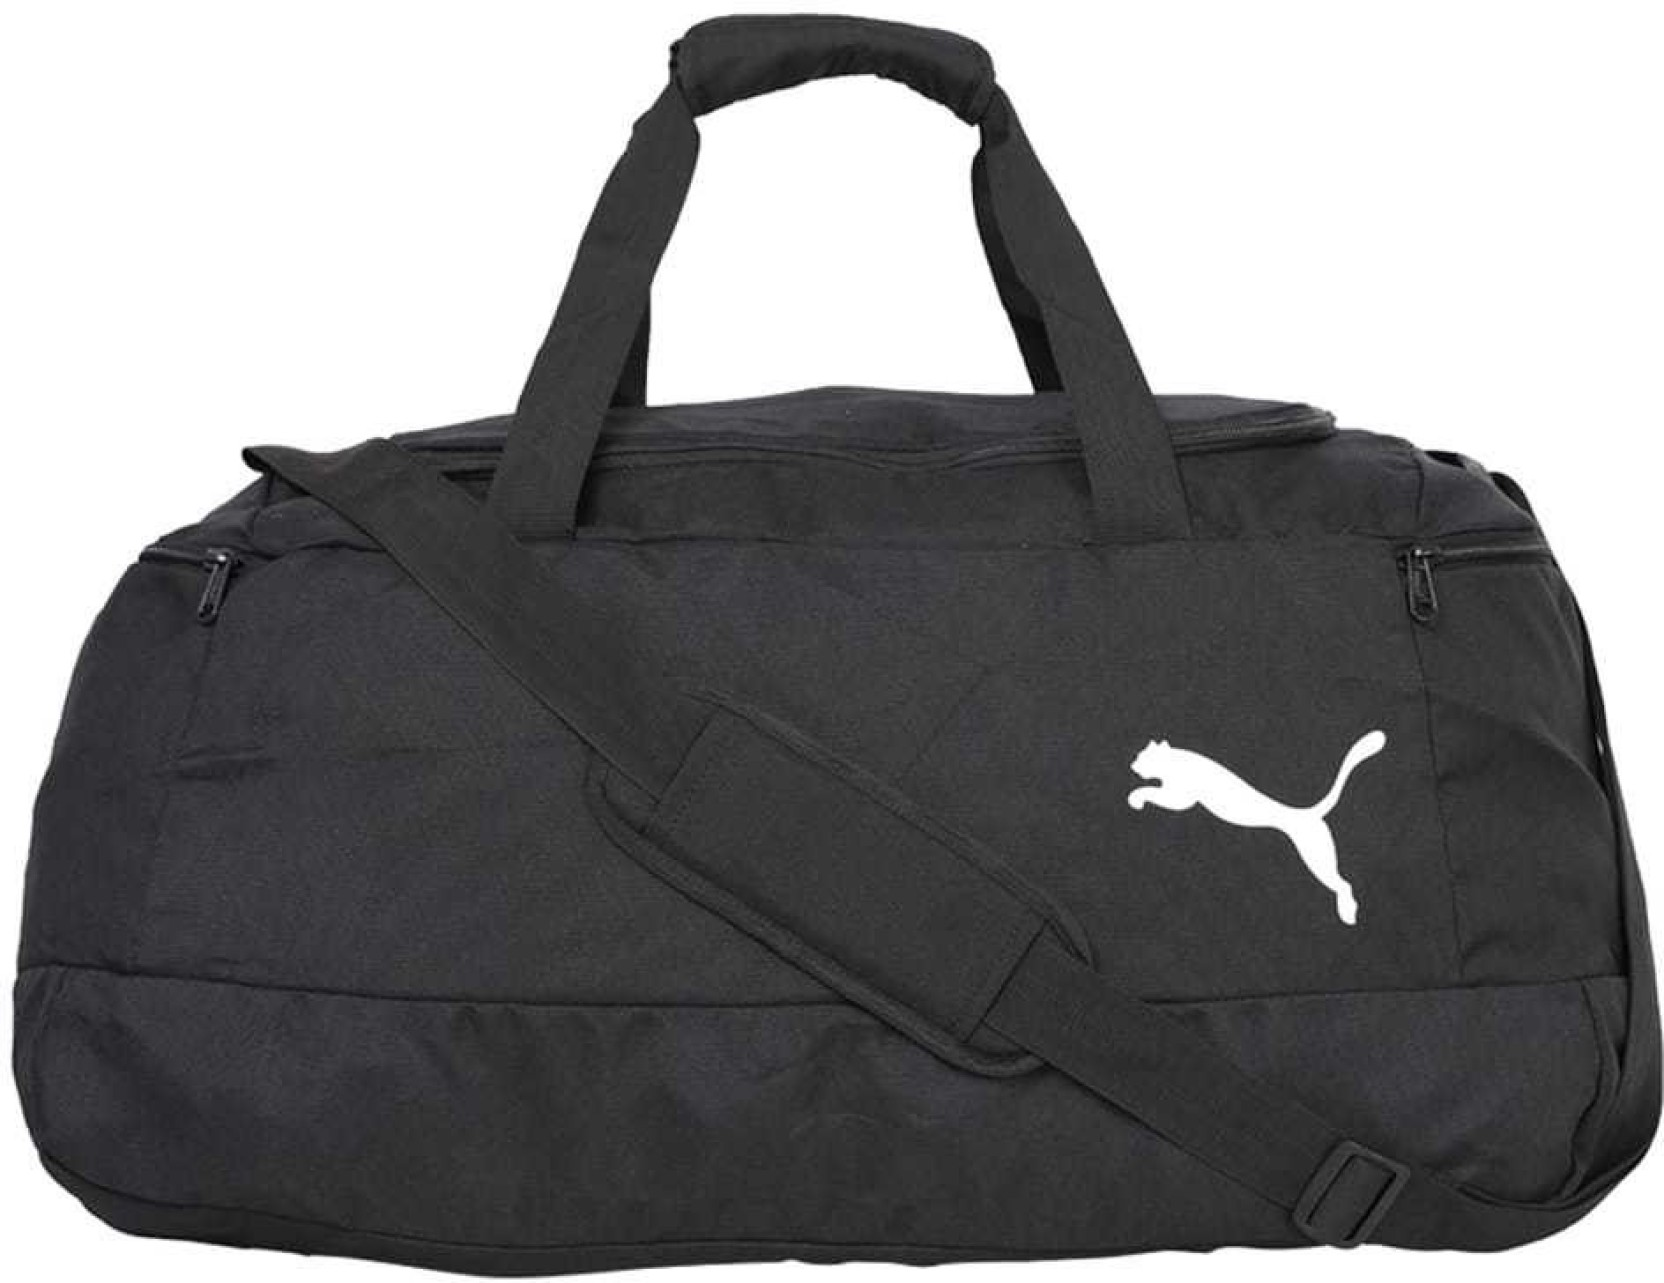 f0527fe06d18 Puma Pro Training II Medium Bag Gym Bag Black - Price in India ...